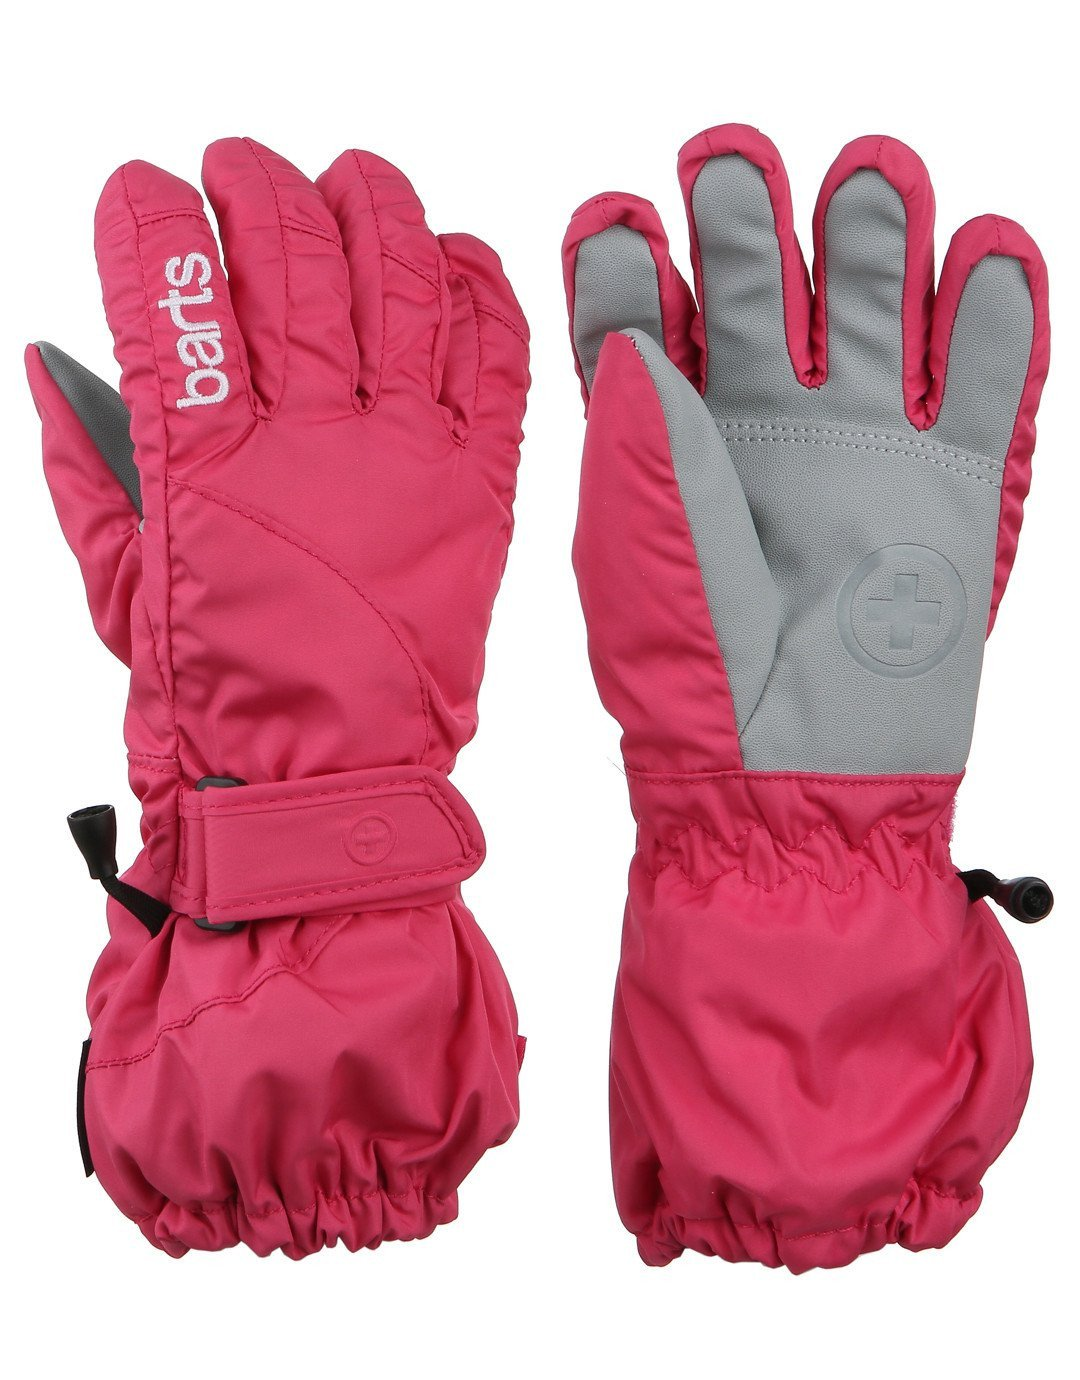 Image of Barts Kids Tec Gloves - Fuchsia